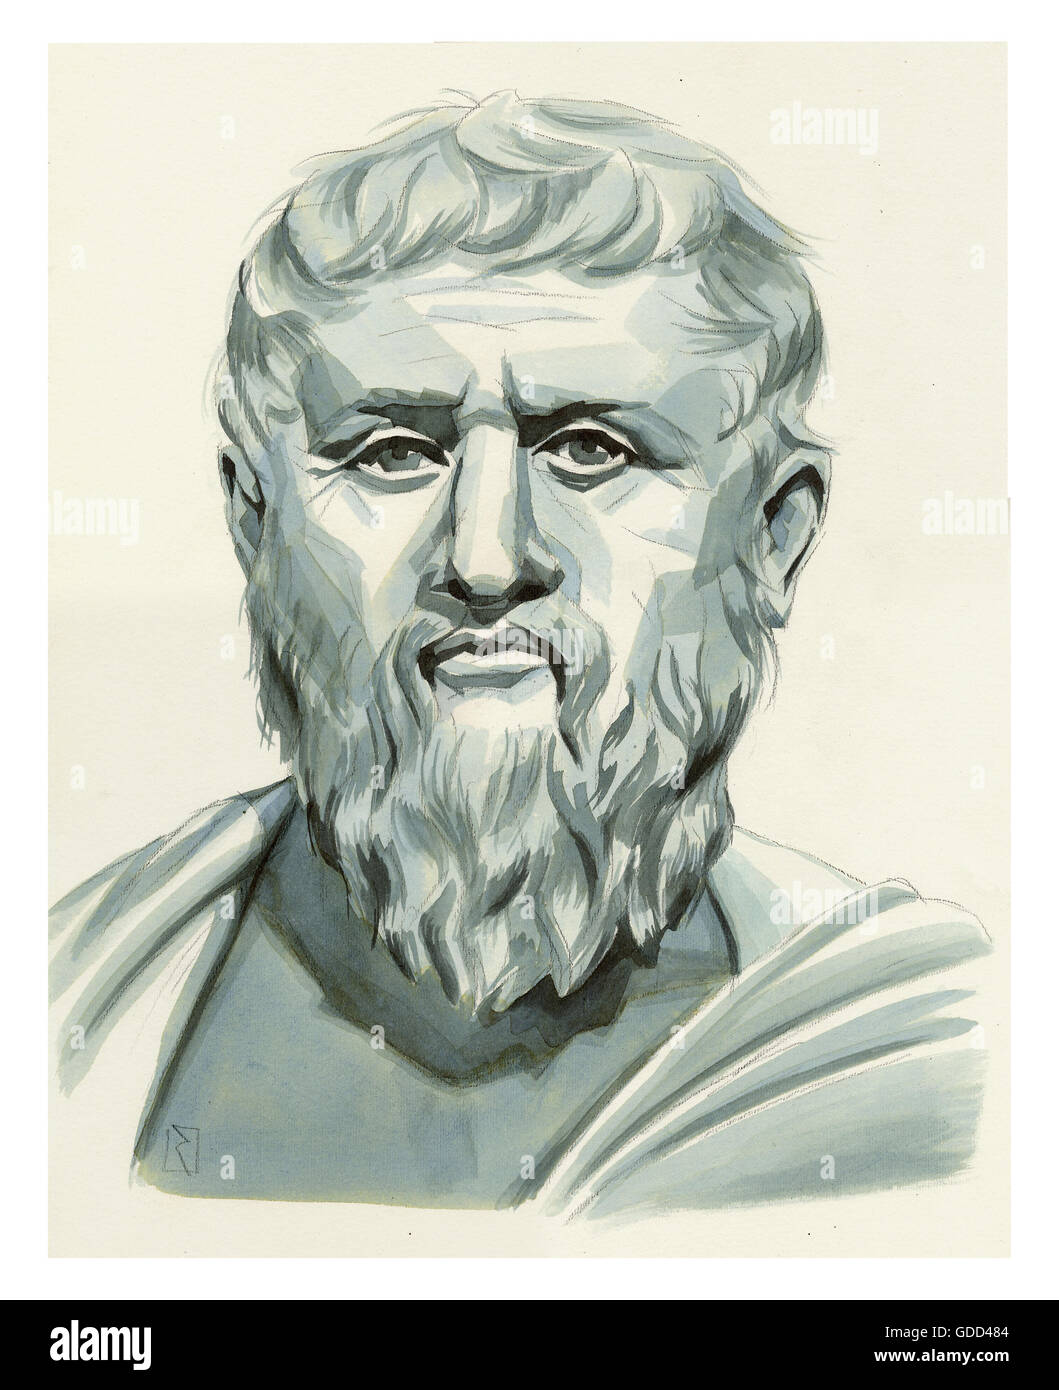 Platon, 427 - 347 vChr., Greek philosopher, portrait, monochrome drawing by Jan Rieckhoff, 20.6.2007, Artist's - Stock Image